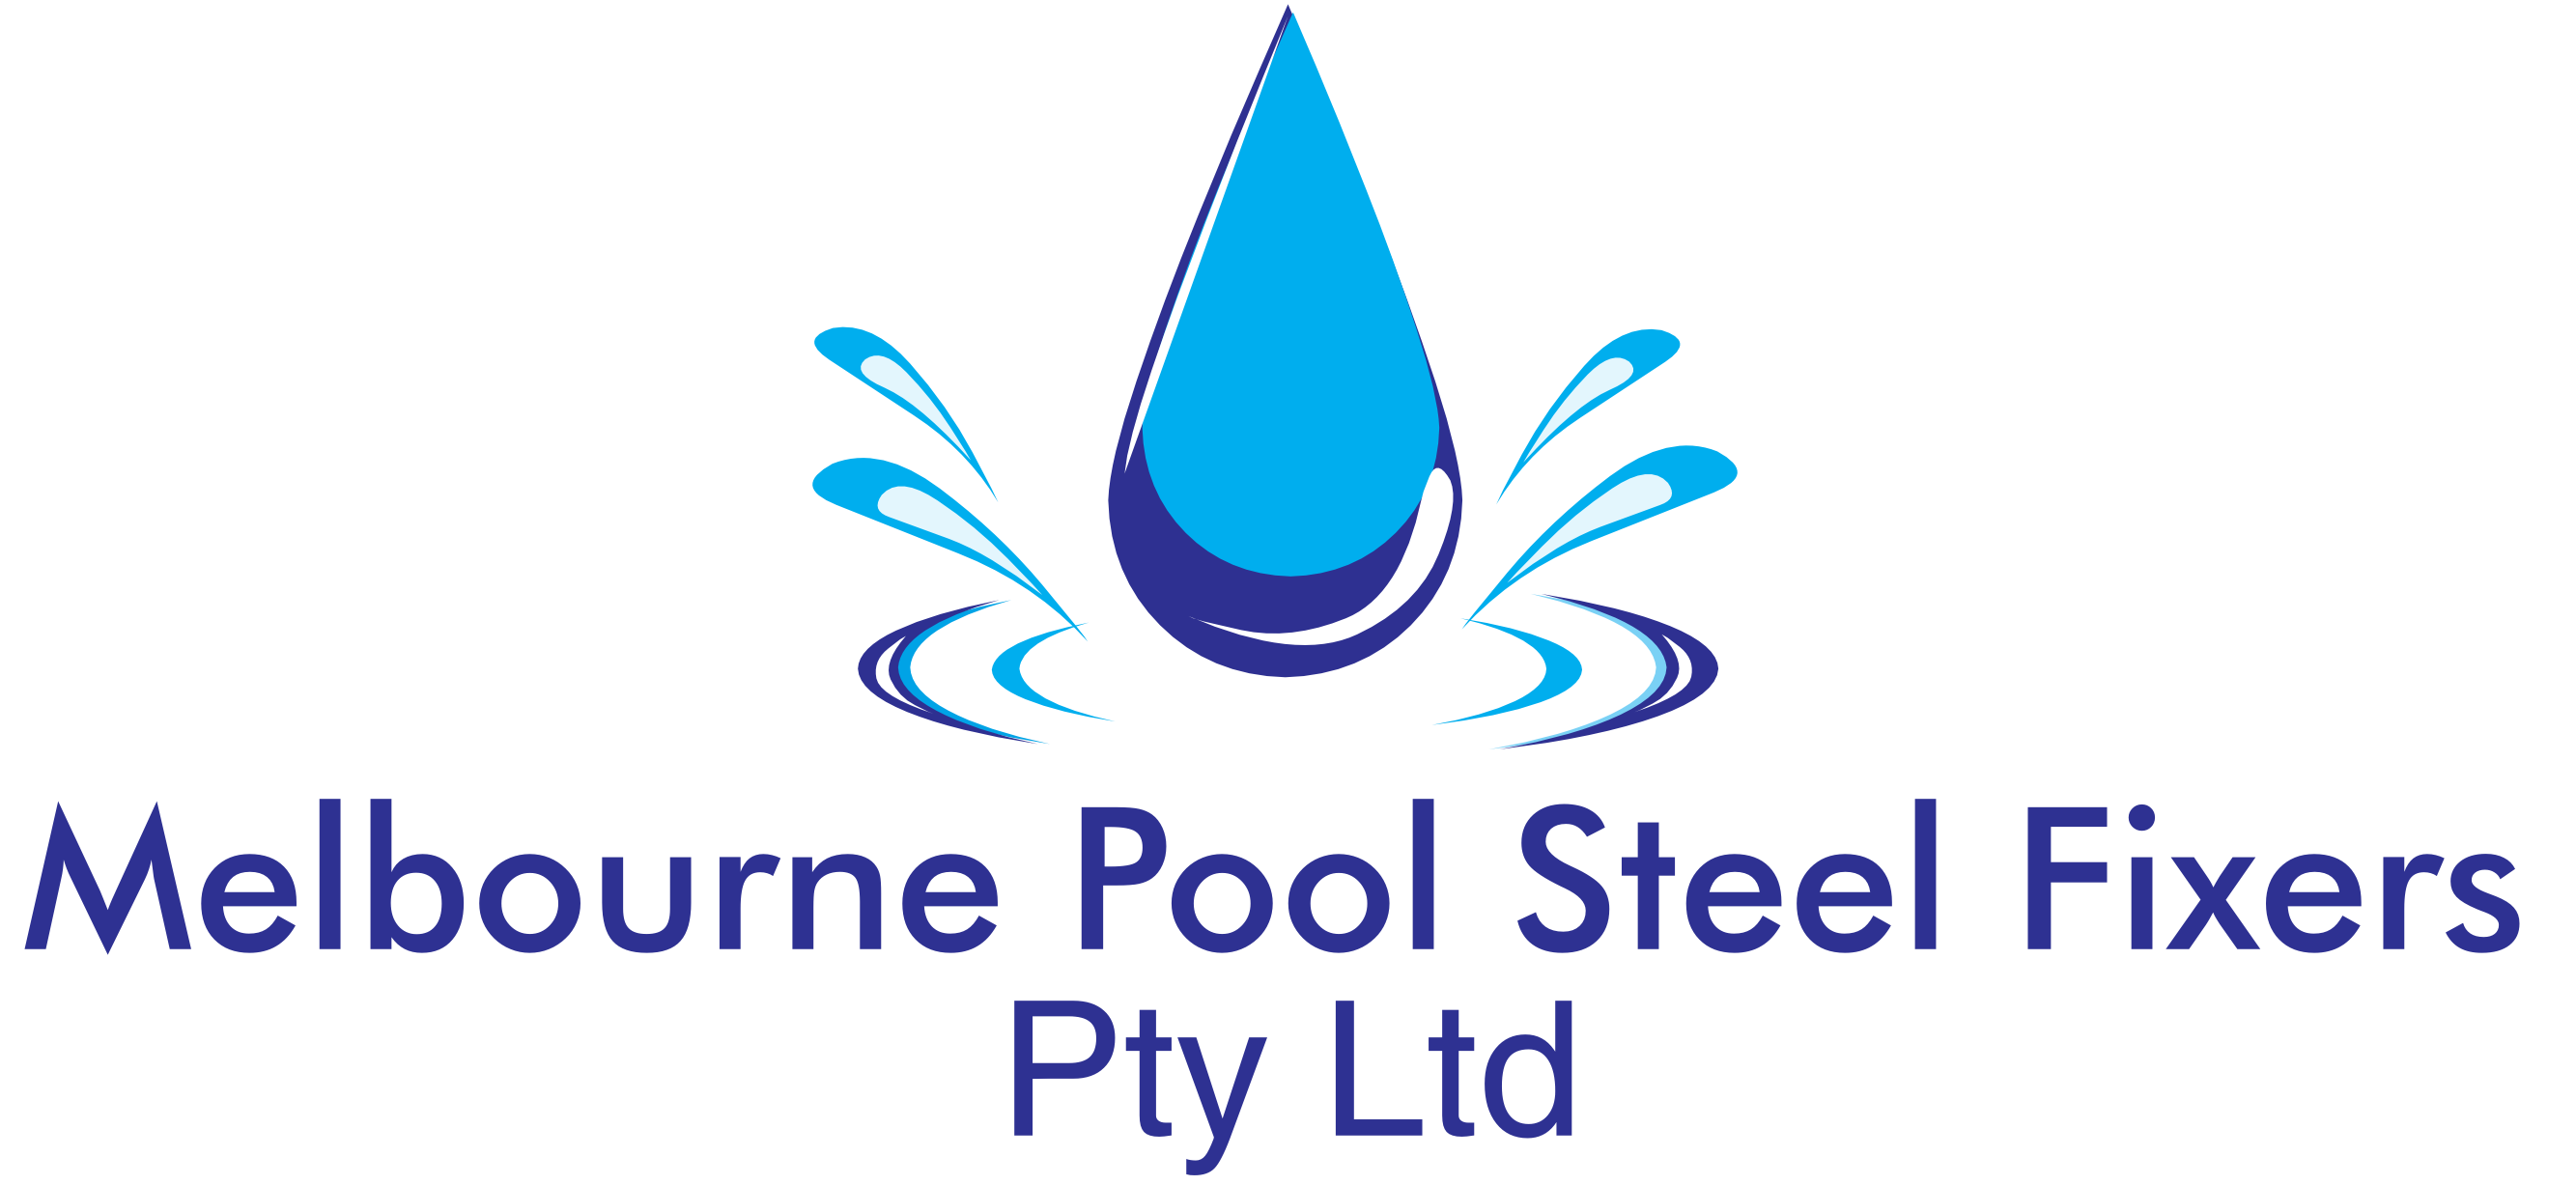 Melbourne Pool Steel Fixers